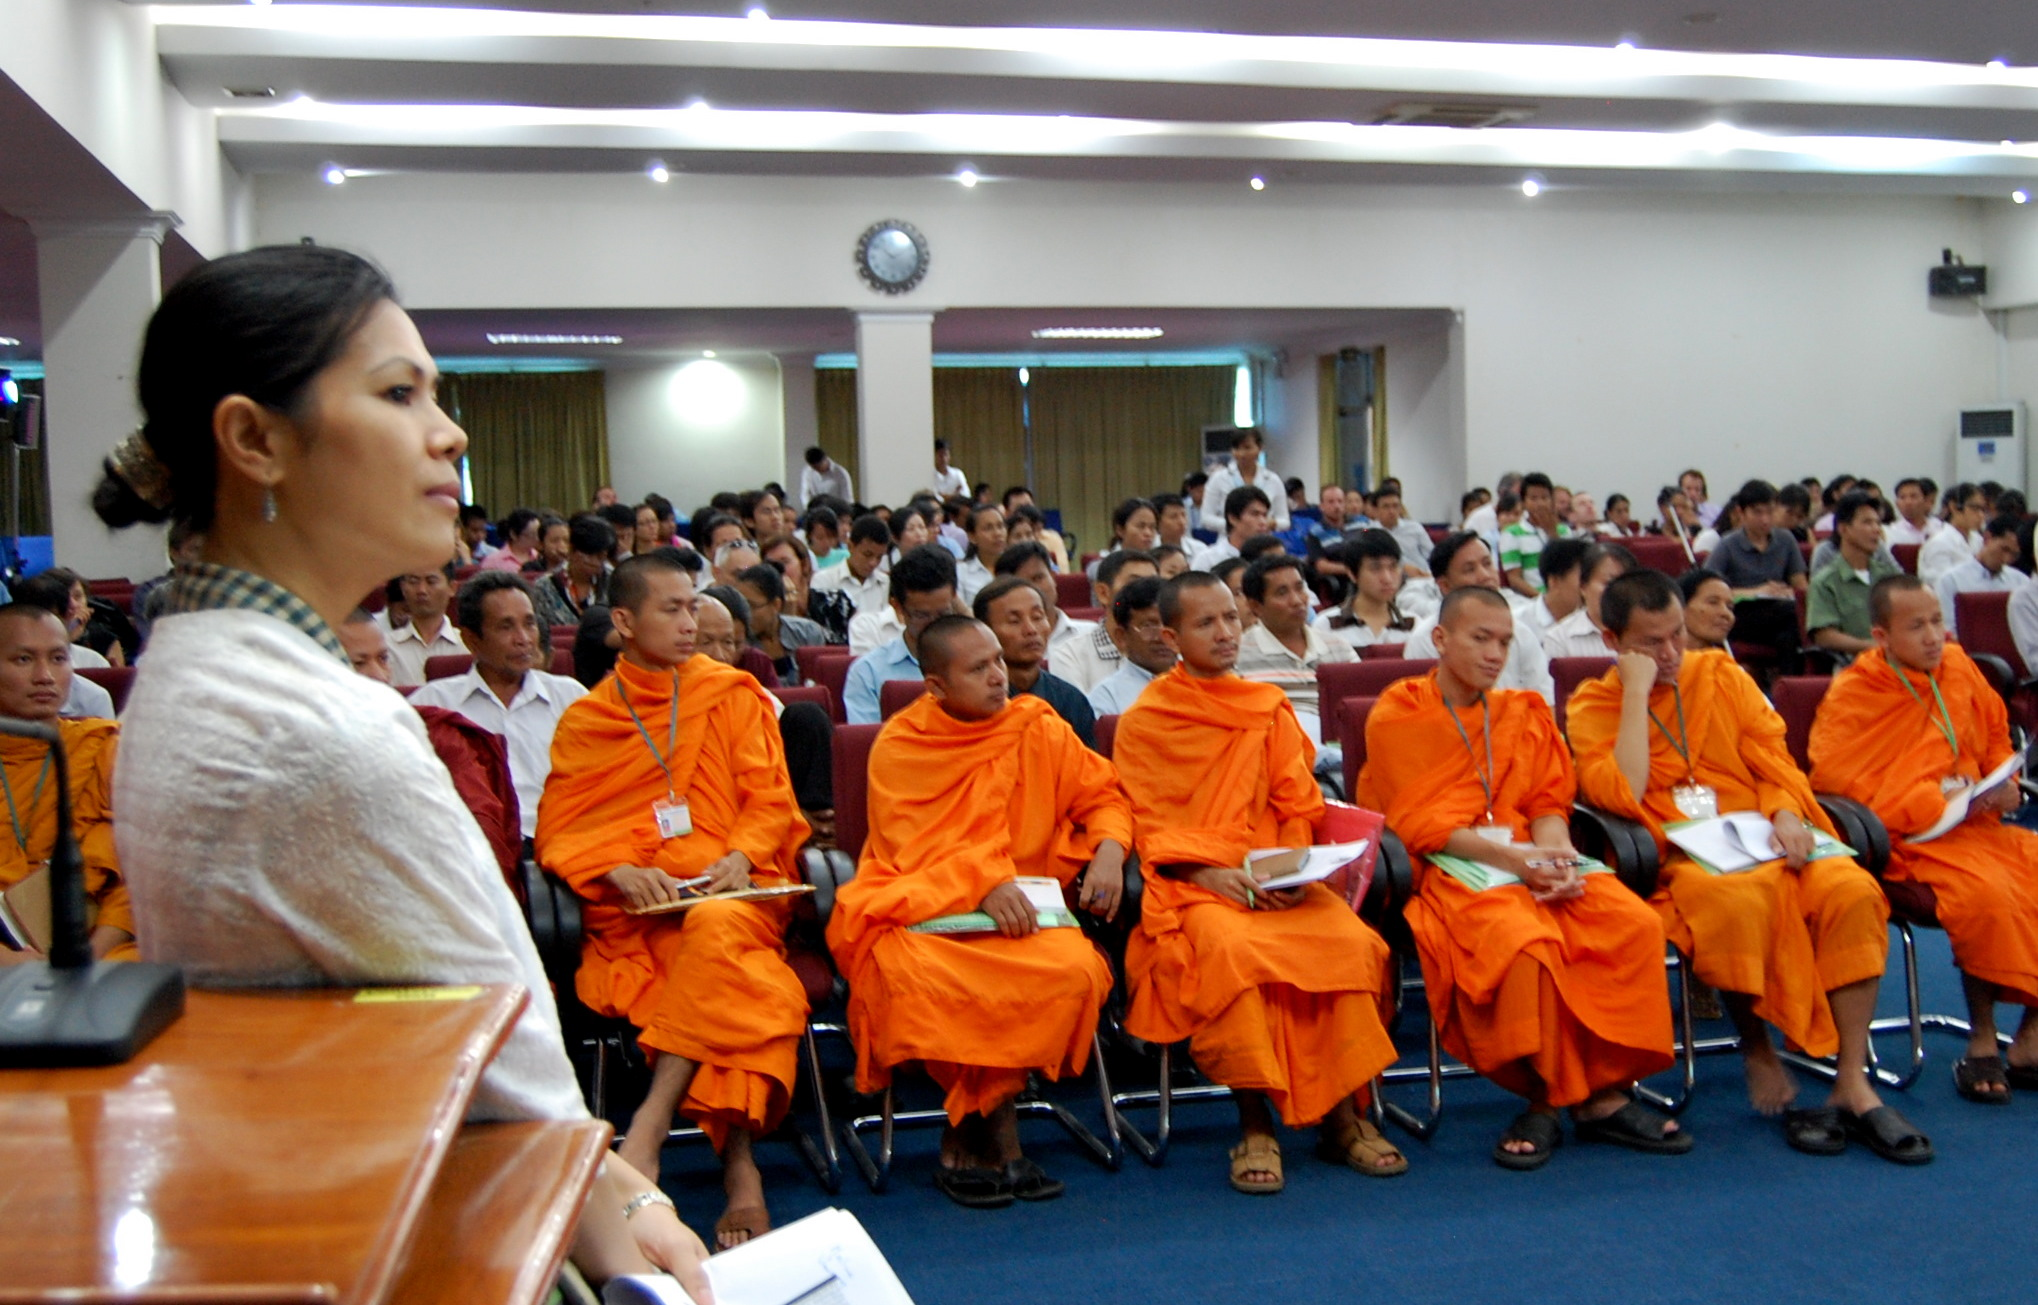 Theary Seng and monks at CJR public forum, 23 July 2010